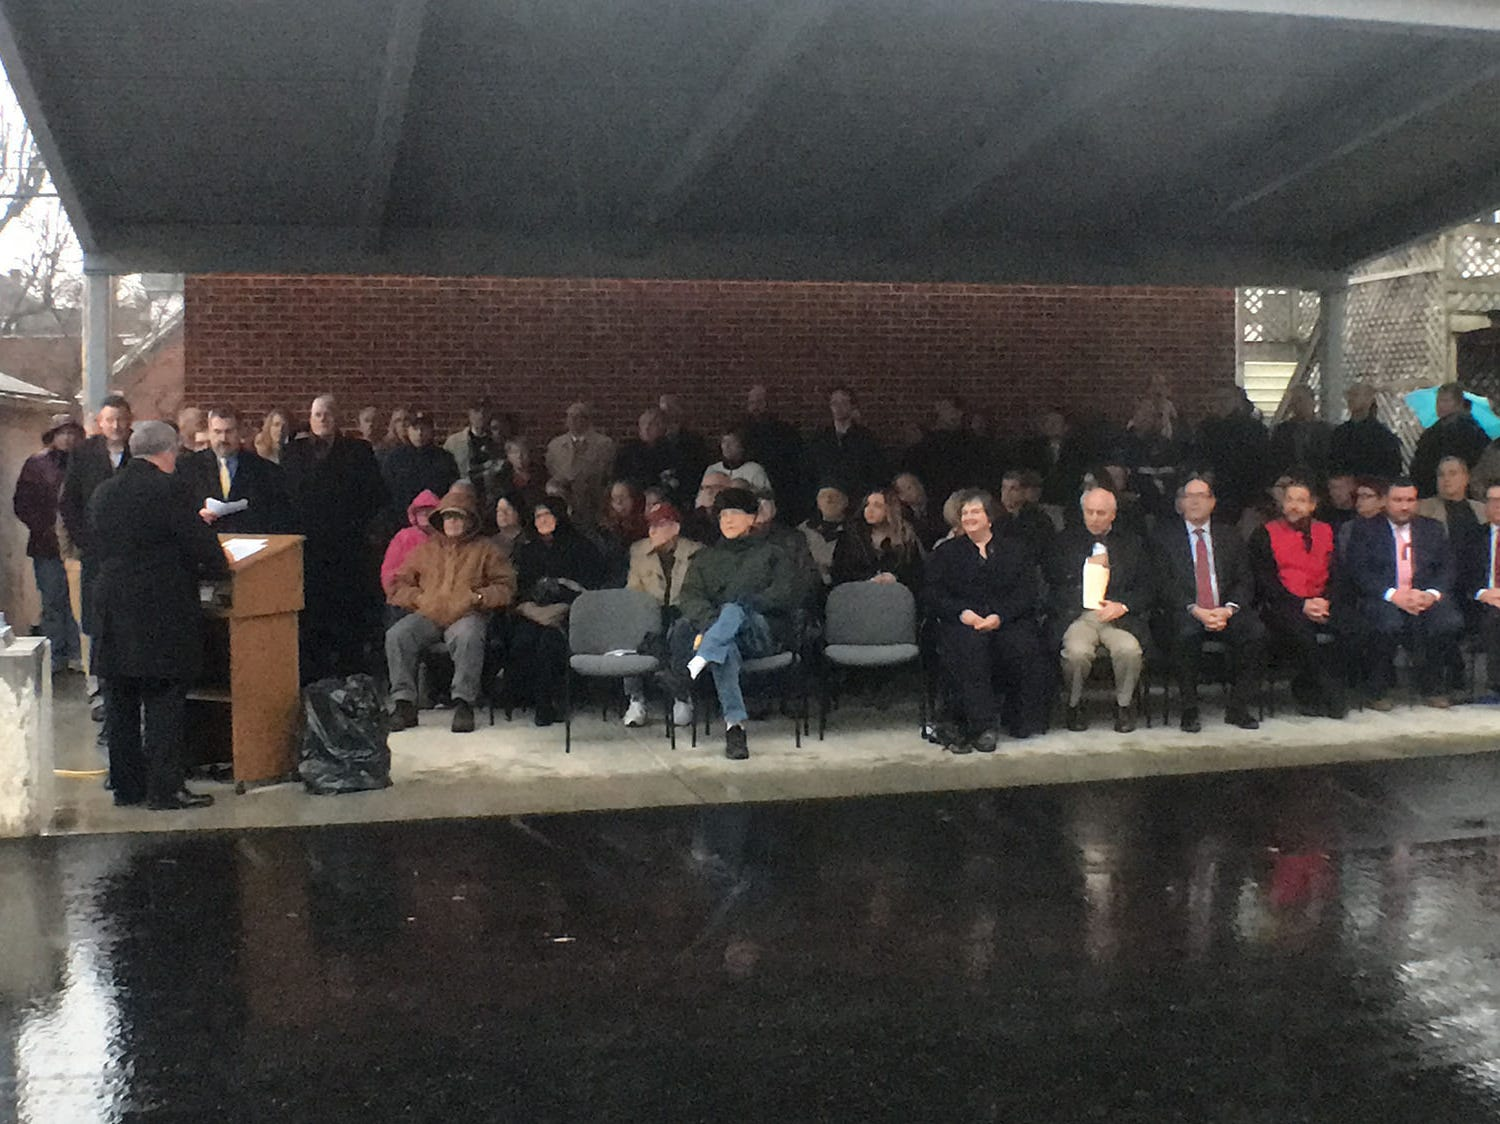 A crowd gathers for a ribboncutting ceremony held Thursday, December 20, 2018 at Chambersburg Borough Hall new addition.